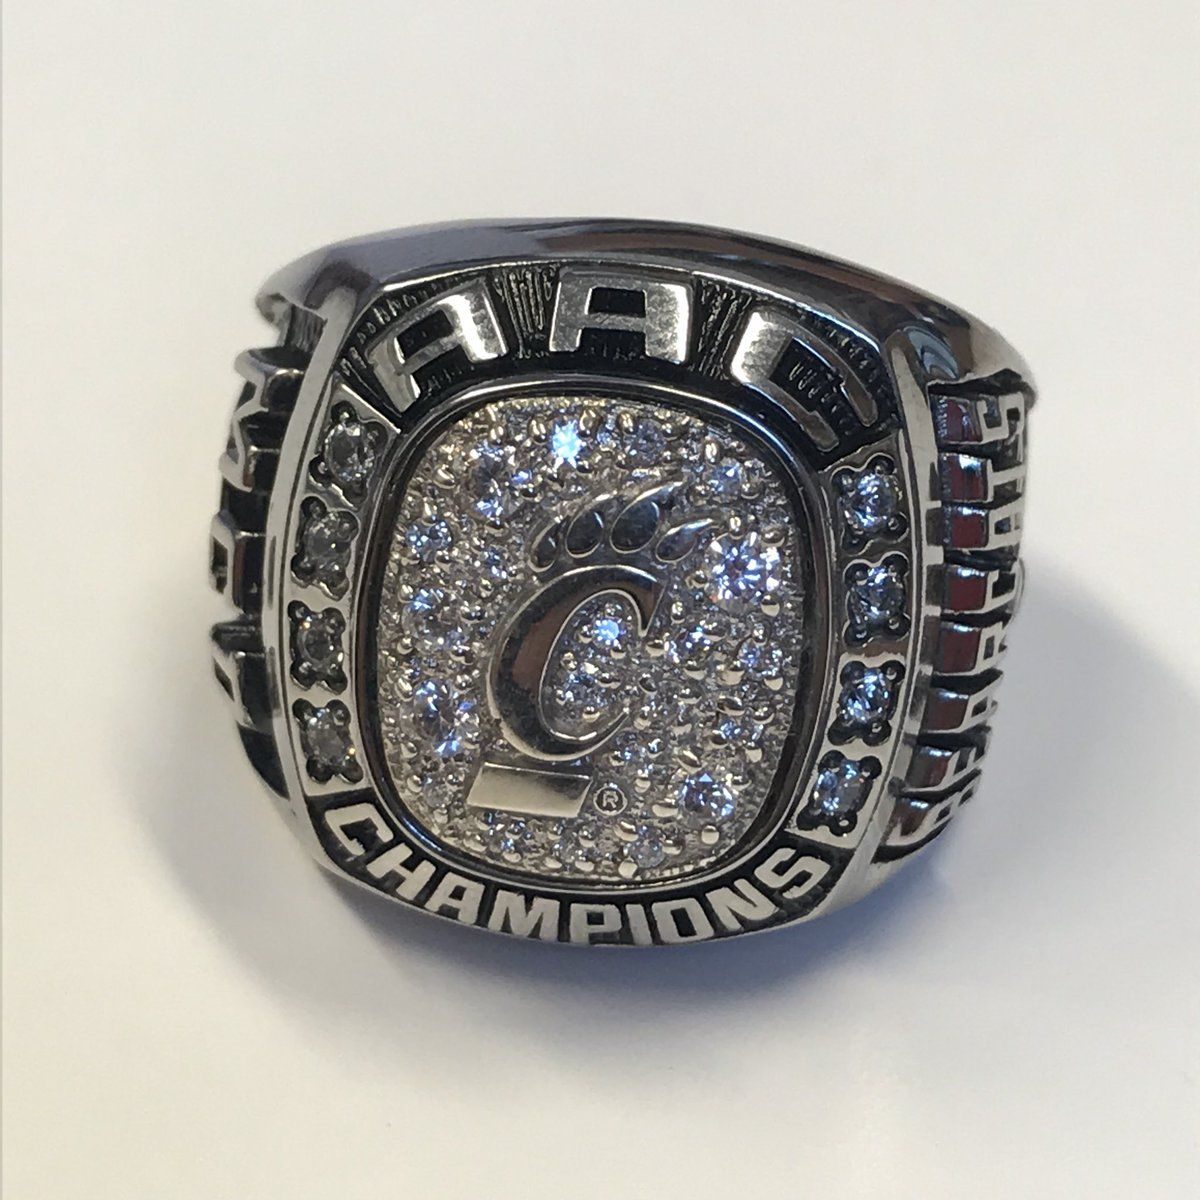 College Rings In 2020 College Rings Rings American Athletic Conference